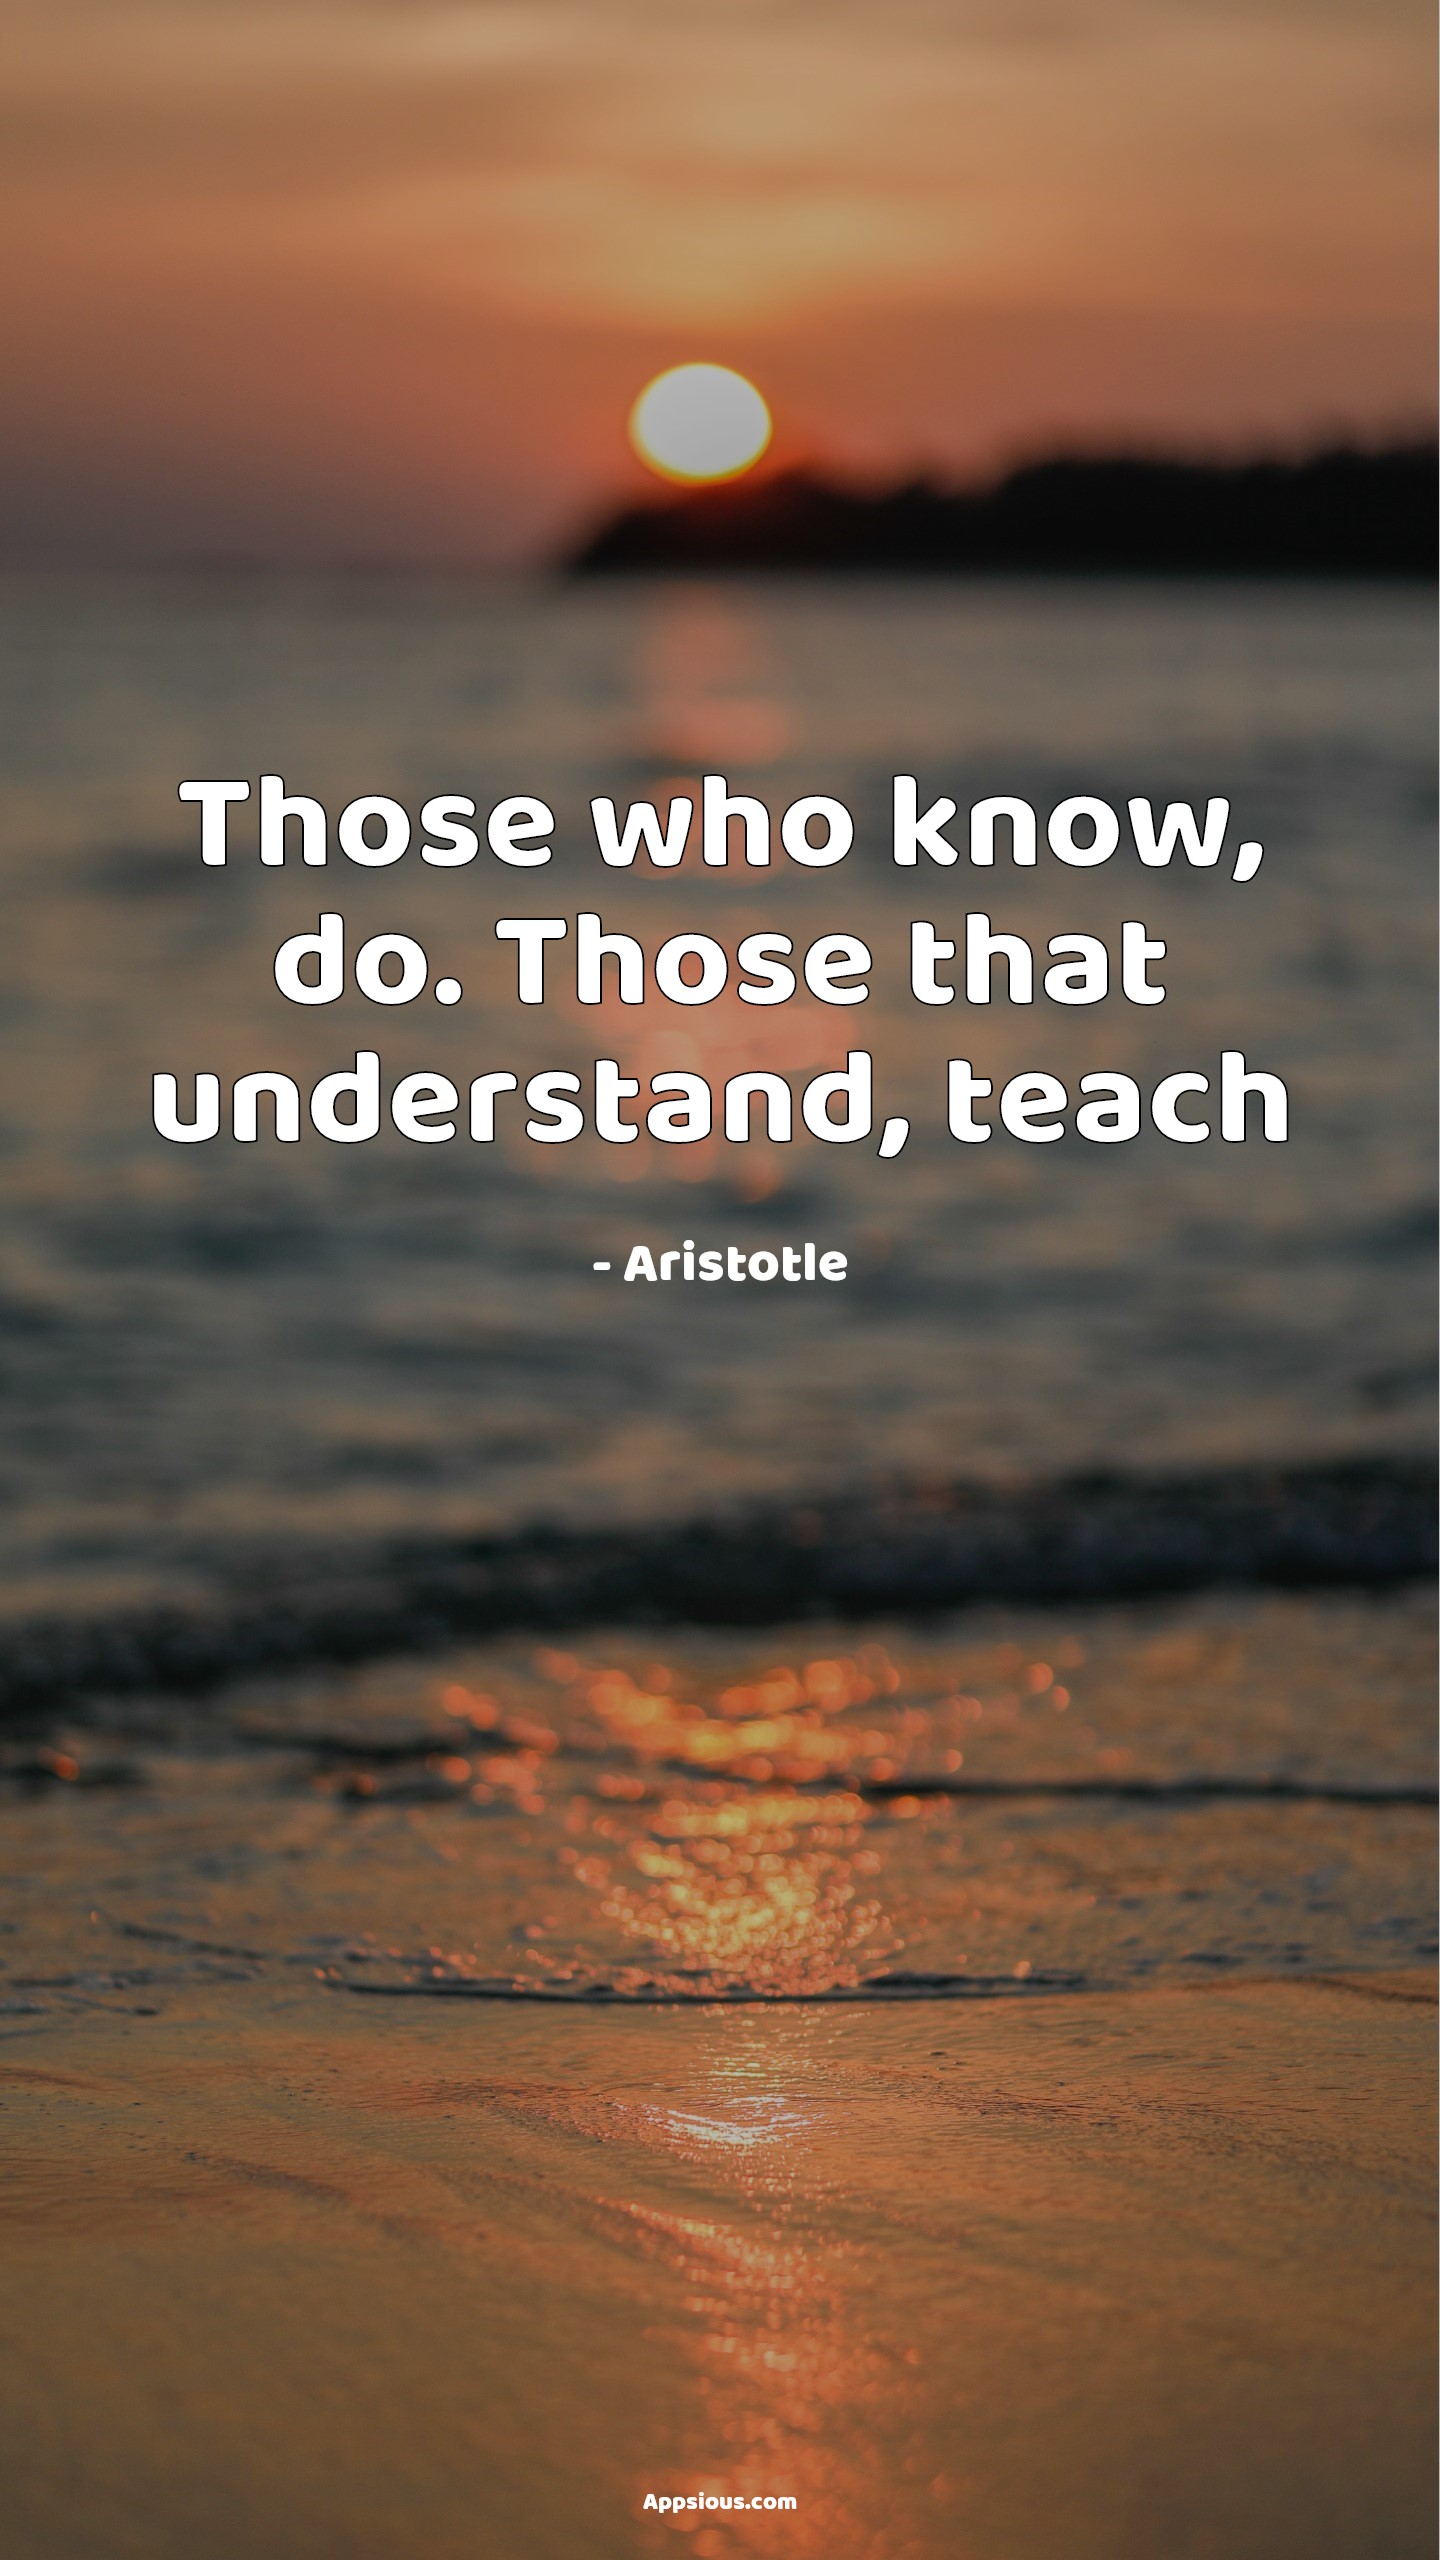 Those who know, do. Those that understand, teach